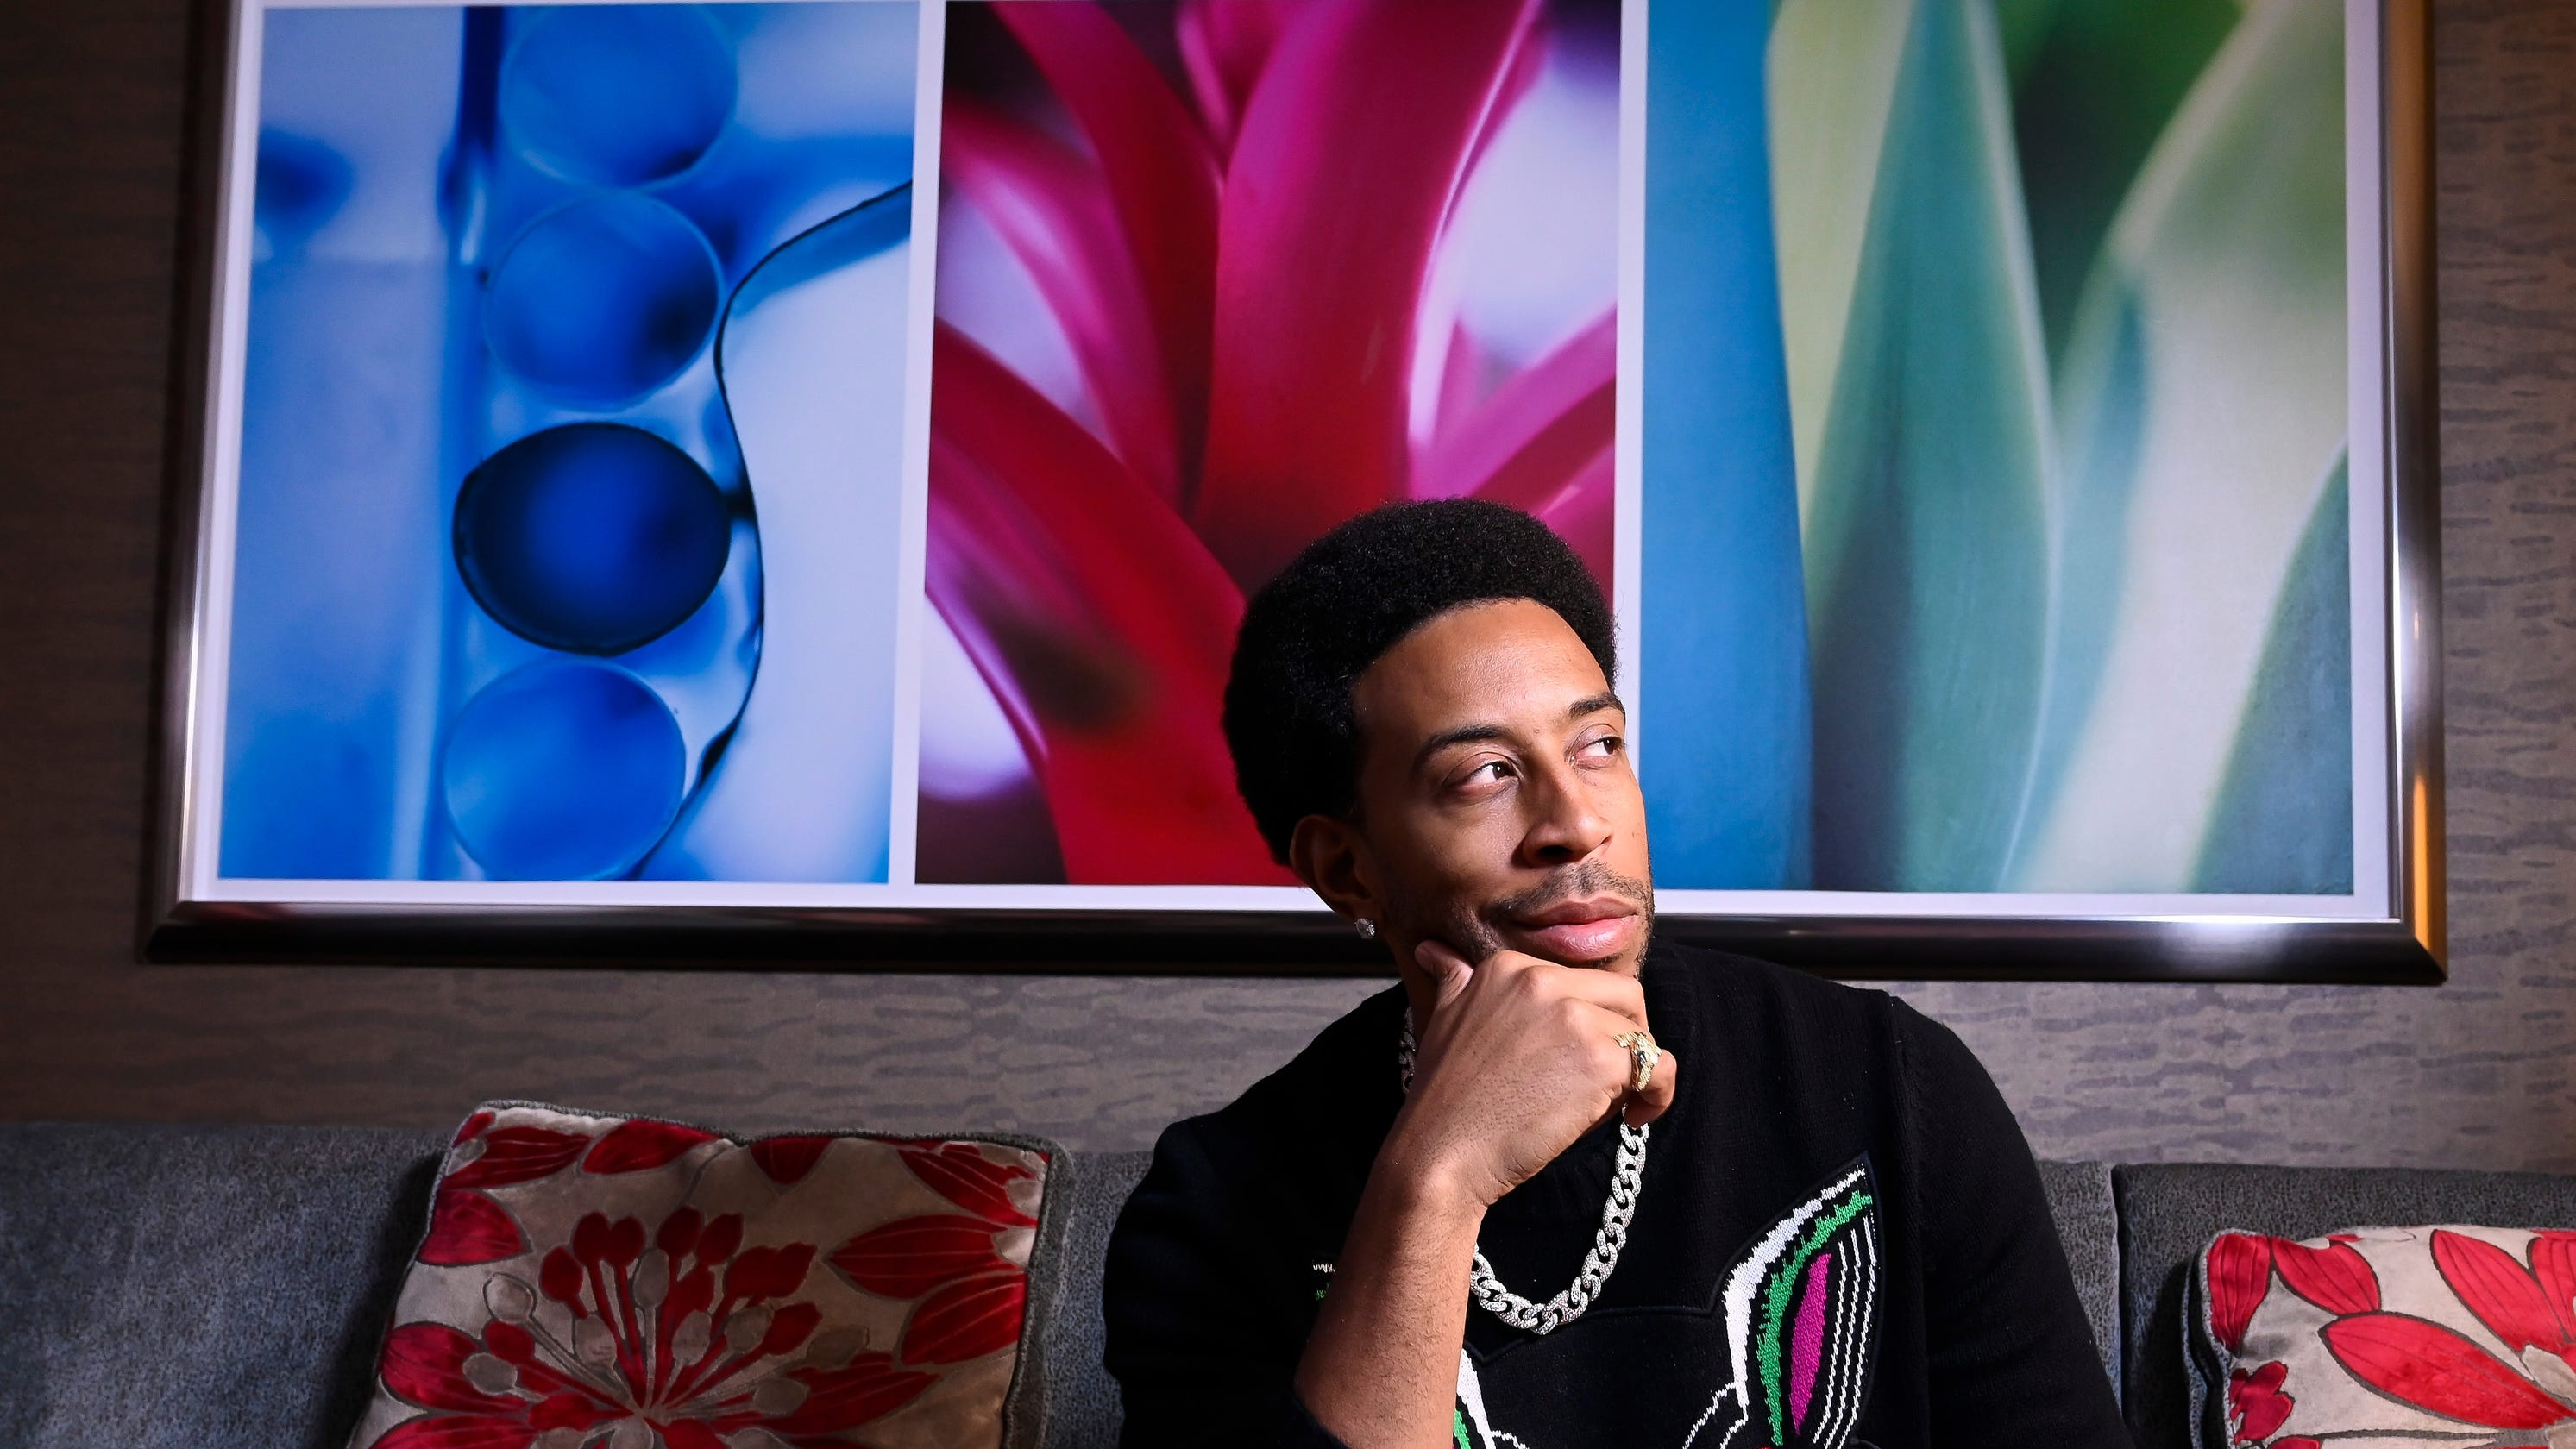 CES 2020: Fast & Furious actor Ludacris' thoughts on Tesla as EVs have a major moment